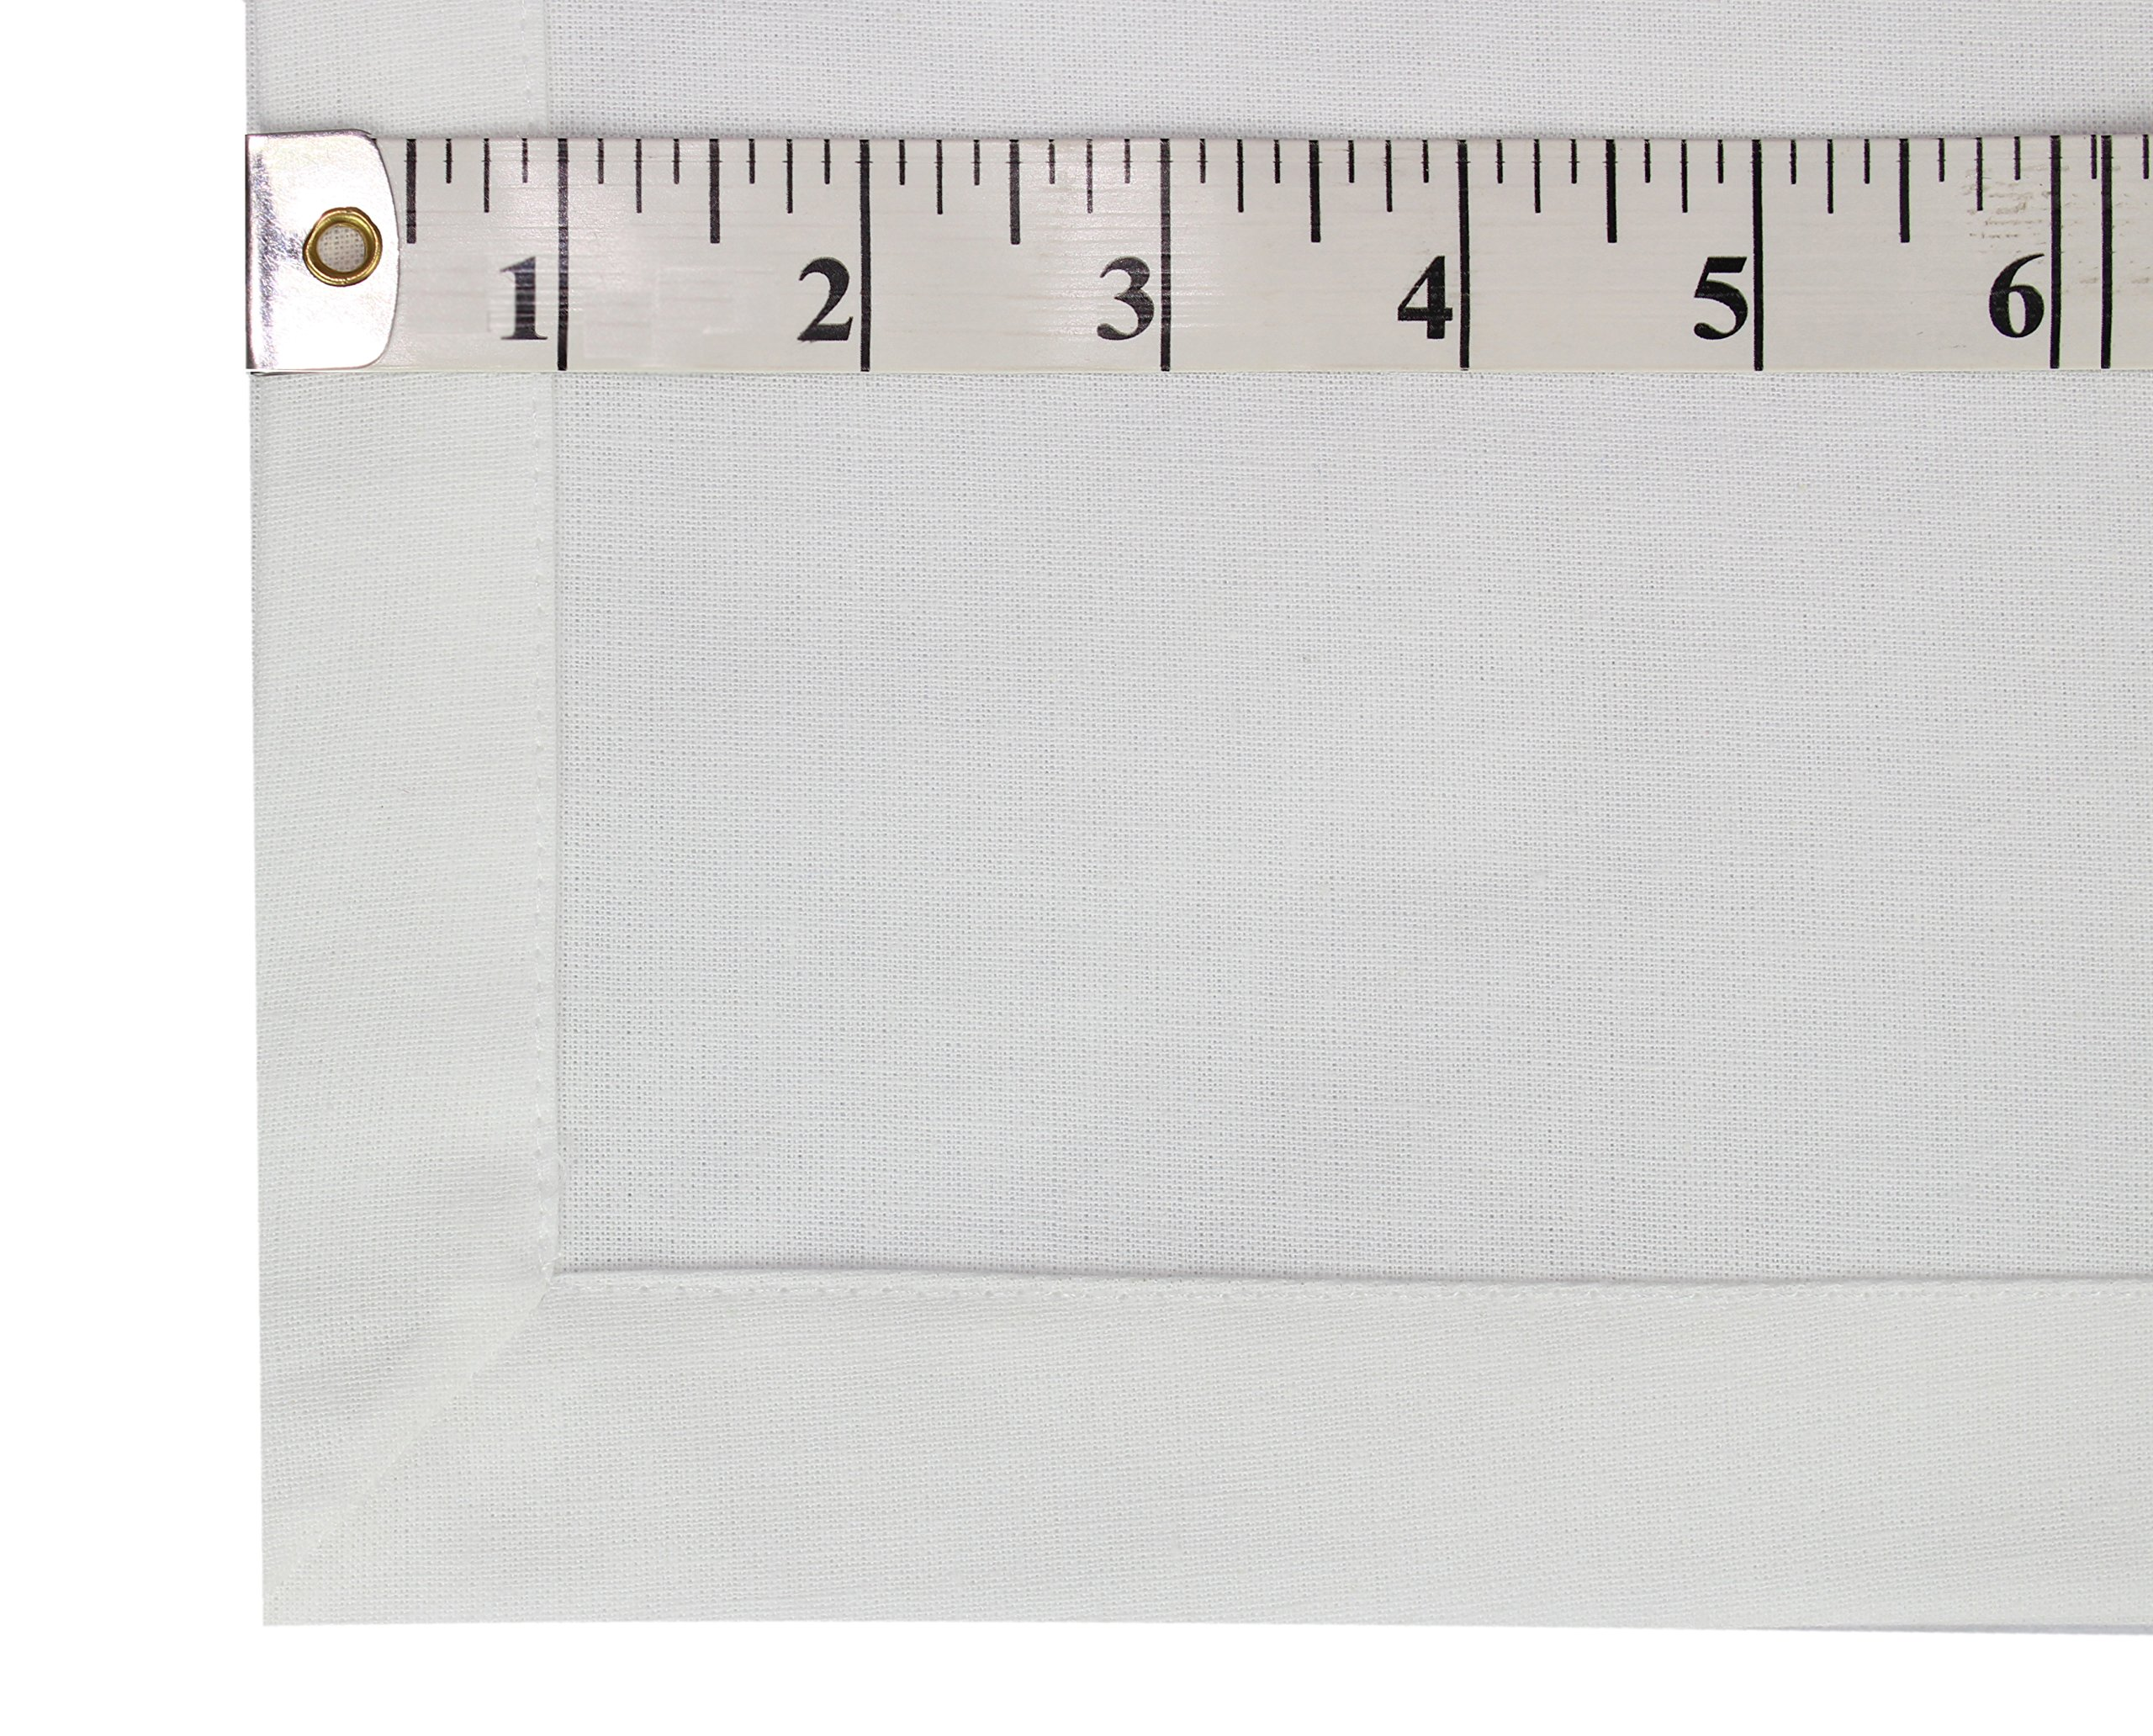 Cotton Craft Napkins, 12 Pack Oversized Dinner Napkins 20x20 White, 100% Cotton, Tailored with Mitered corners and a generous hem, Napkins are 38% larger than standard size napkins by Cotton Craft (Image #3)